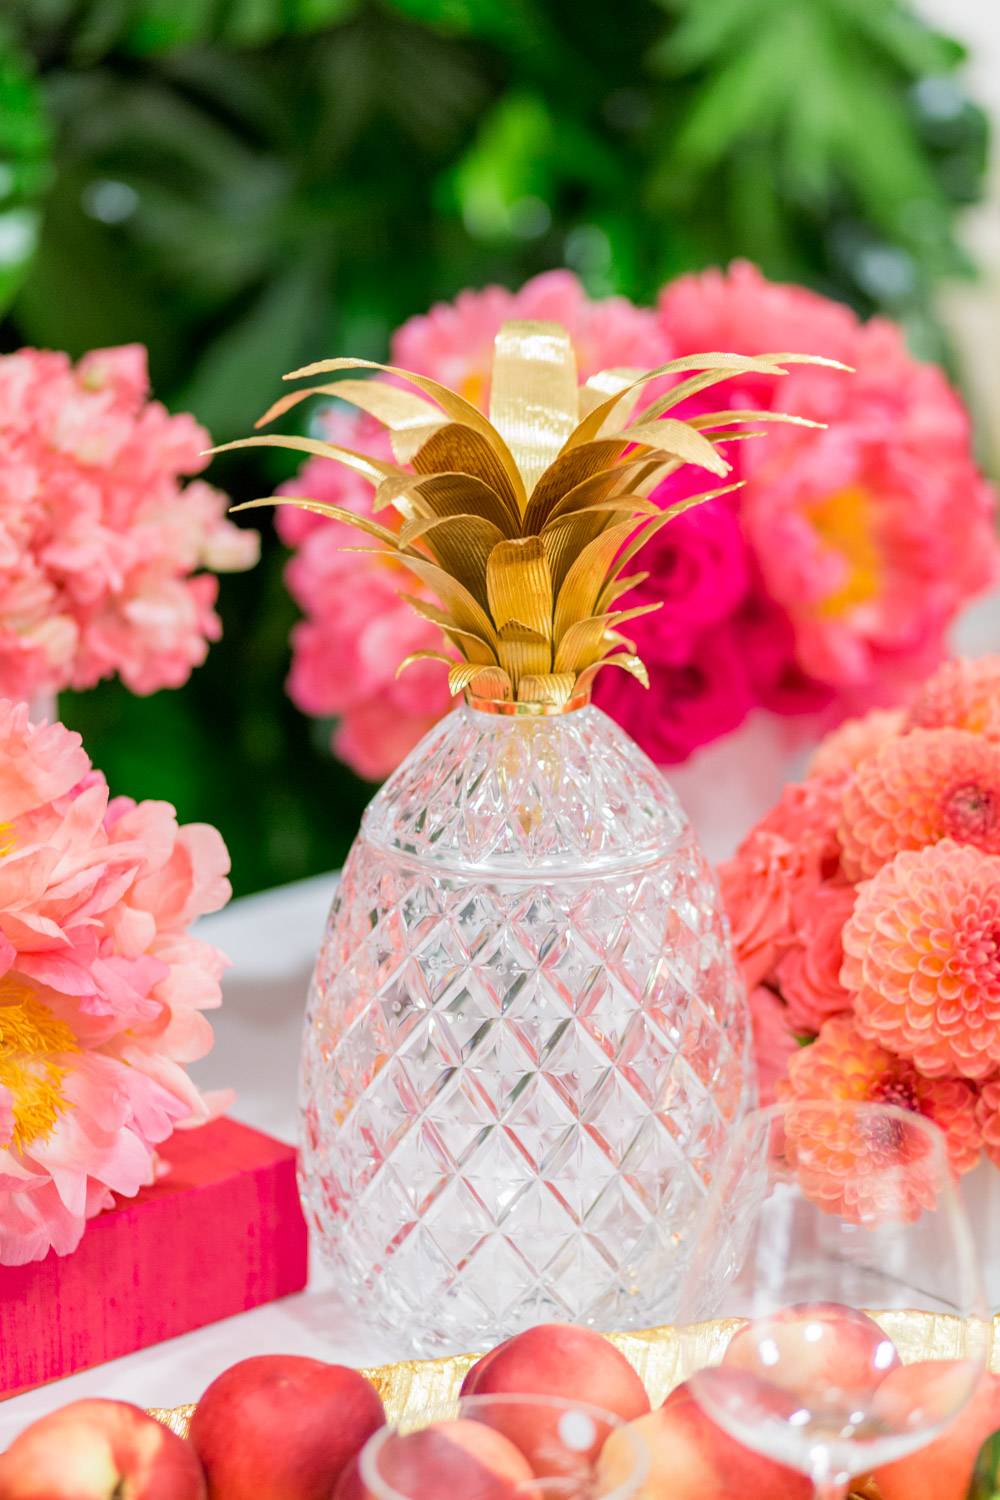 Crystal And Gold Plated Pinele A Gorgeous Pink Orange Fl Arrangements With